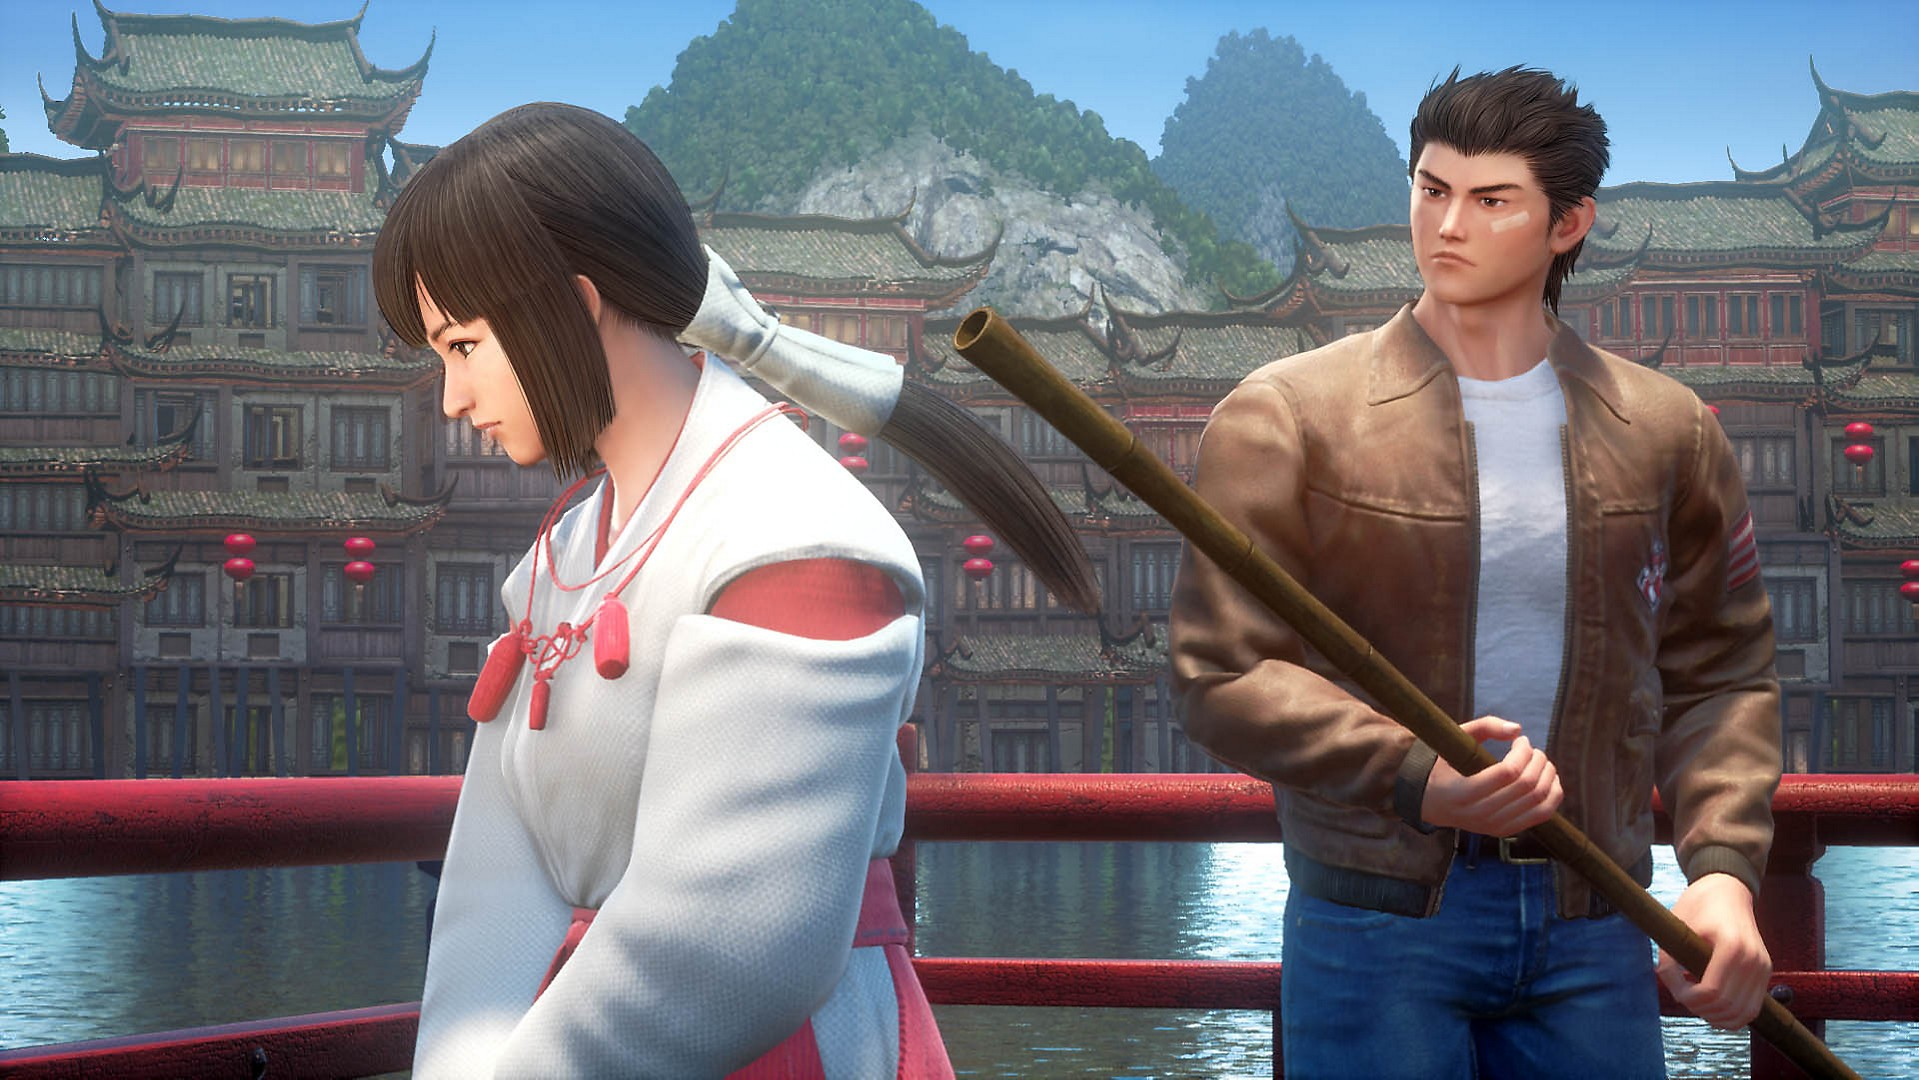 Action, Action & Adventure, adventure, Koch Media, Martial Arts, open world, PS4, PS4 Review, Shenmue, Shenmue III, Shenmue III Review, Story Rich, YS Net